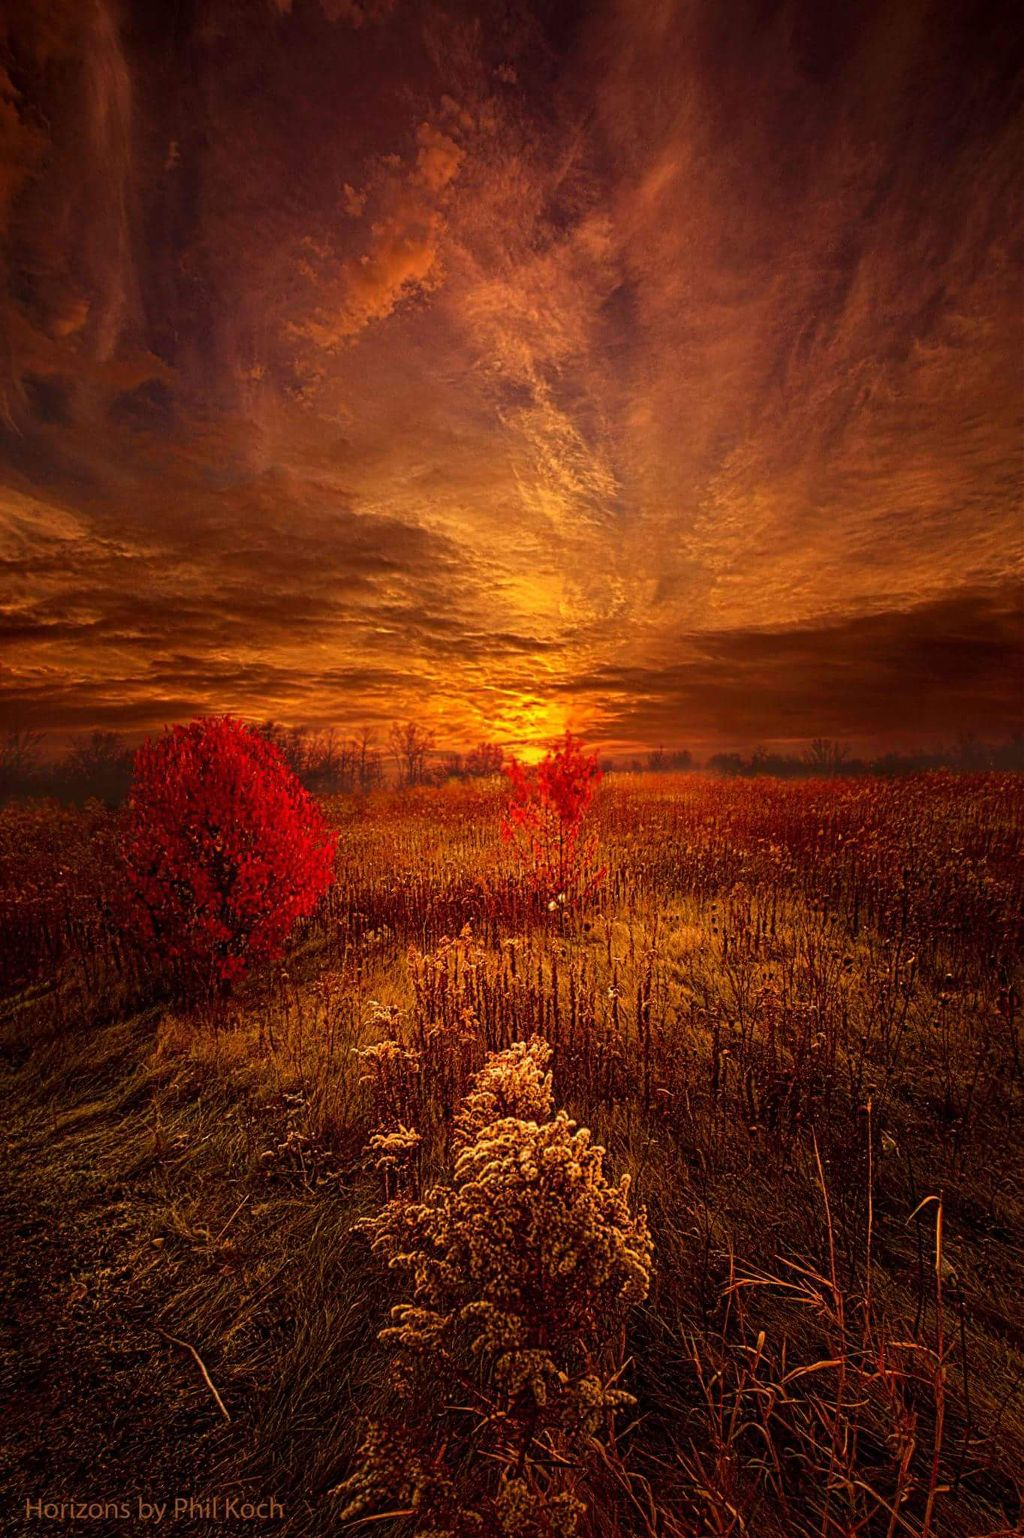 """""""Following Your Heart"""" - Horizons by Phil Koch.  #orange #autumn #fall #FallColors #warm #weather #sunrise #landscapephotography #beautiful #Nature #landscape #photography #hdr #love #peace #colorful #light #sunset #emotions"""